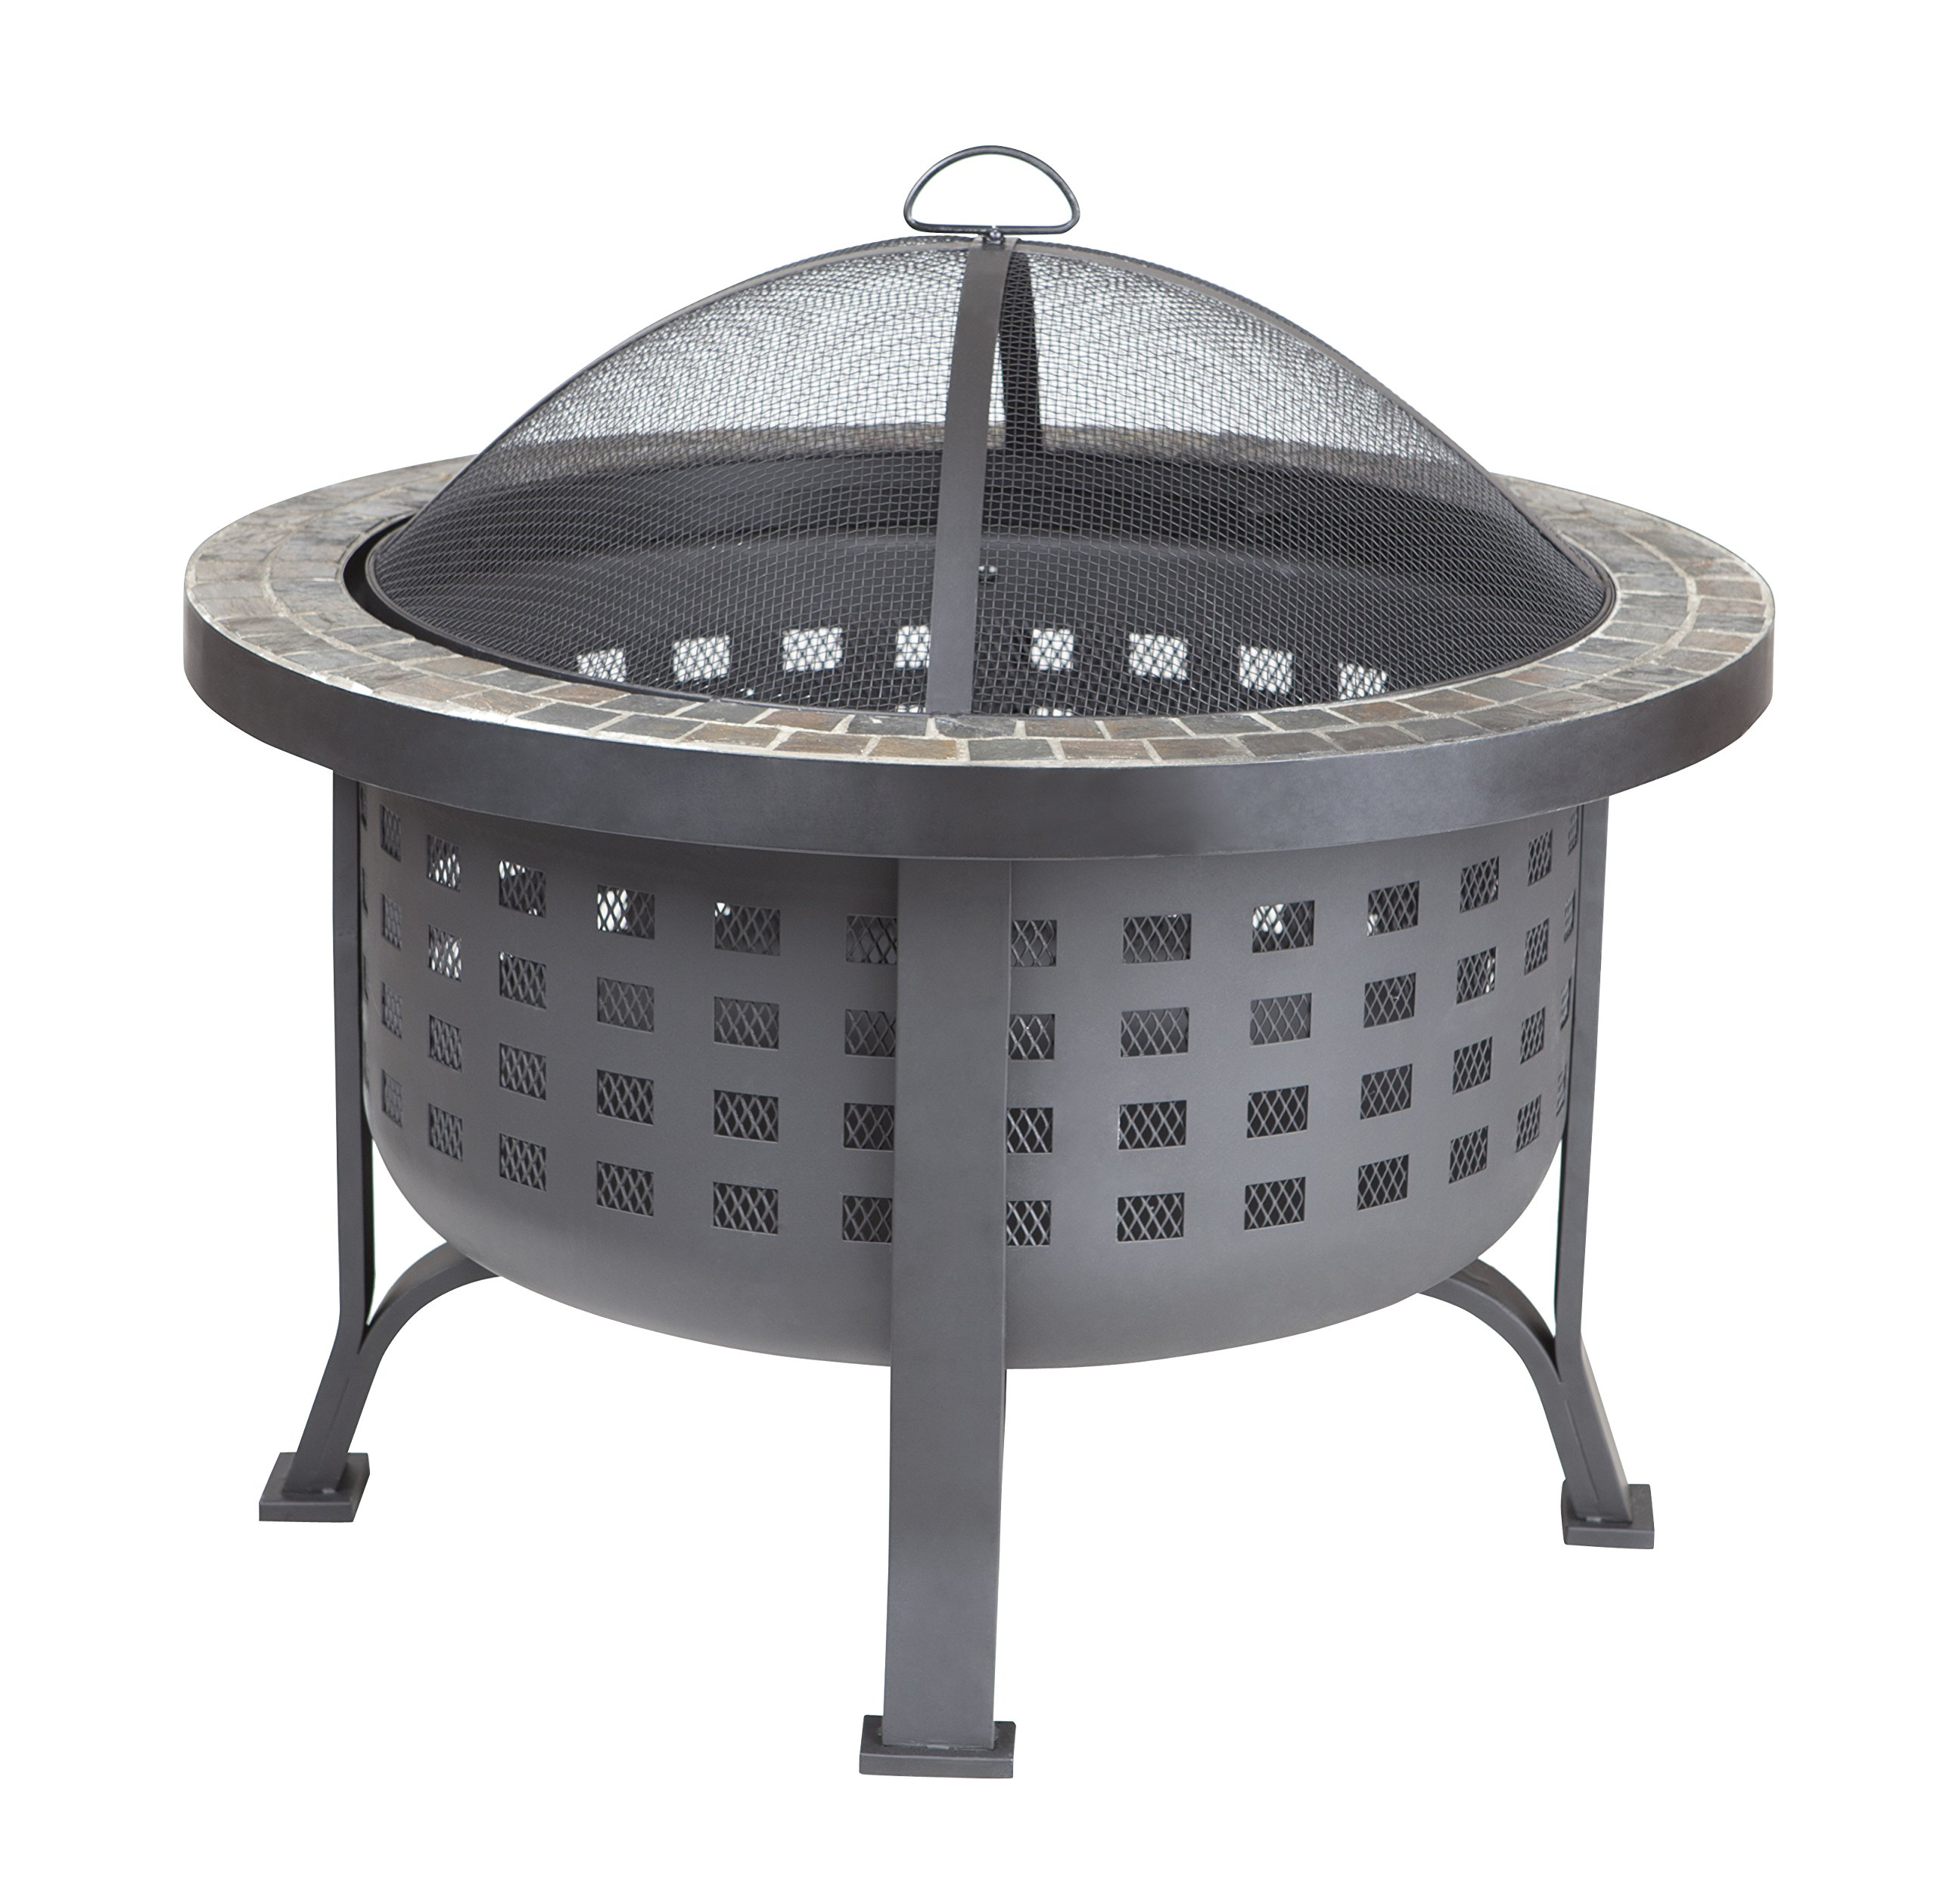 Fire Sense Alpina Round Slate Top Fire Pit - Natural slate top Deep fire bowl One-piece mesh spark screen with high temperature paint - patio, fire-pits-outdoor-fireplaces, outdoor-decor - 91TtbHP2l3L -